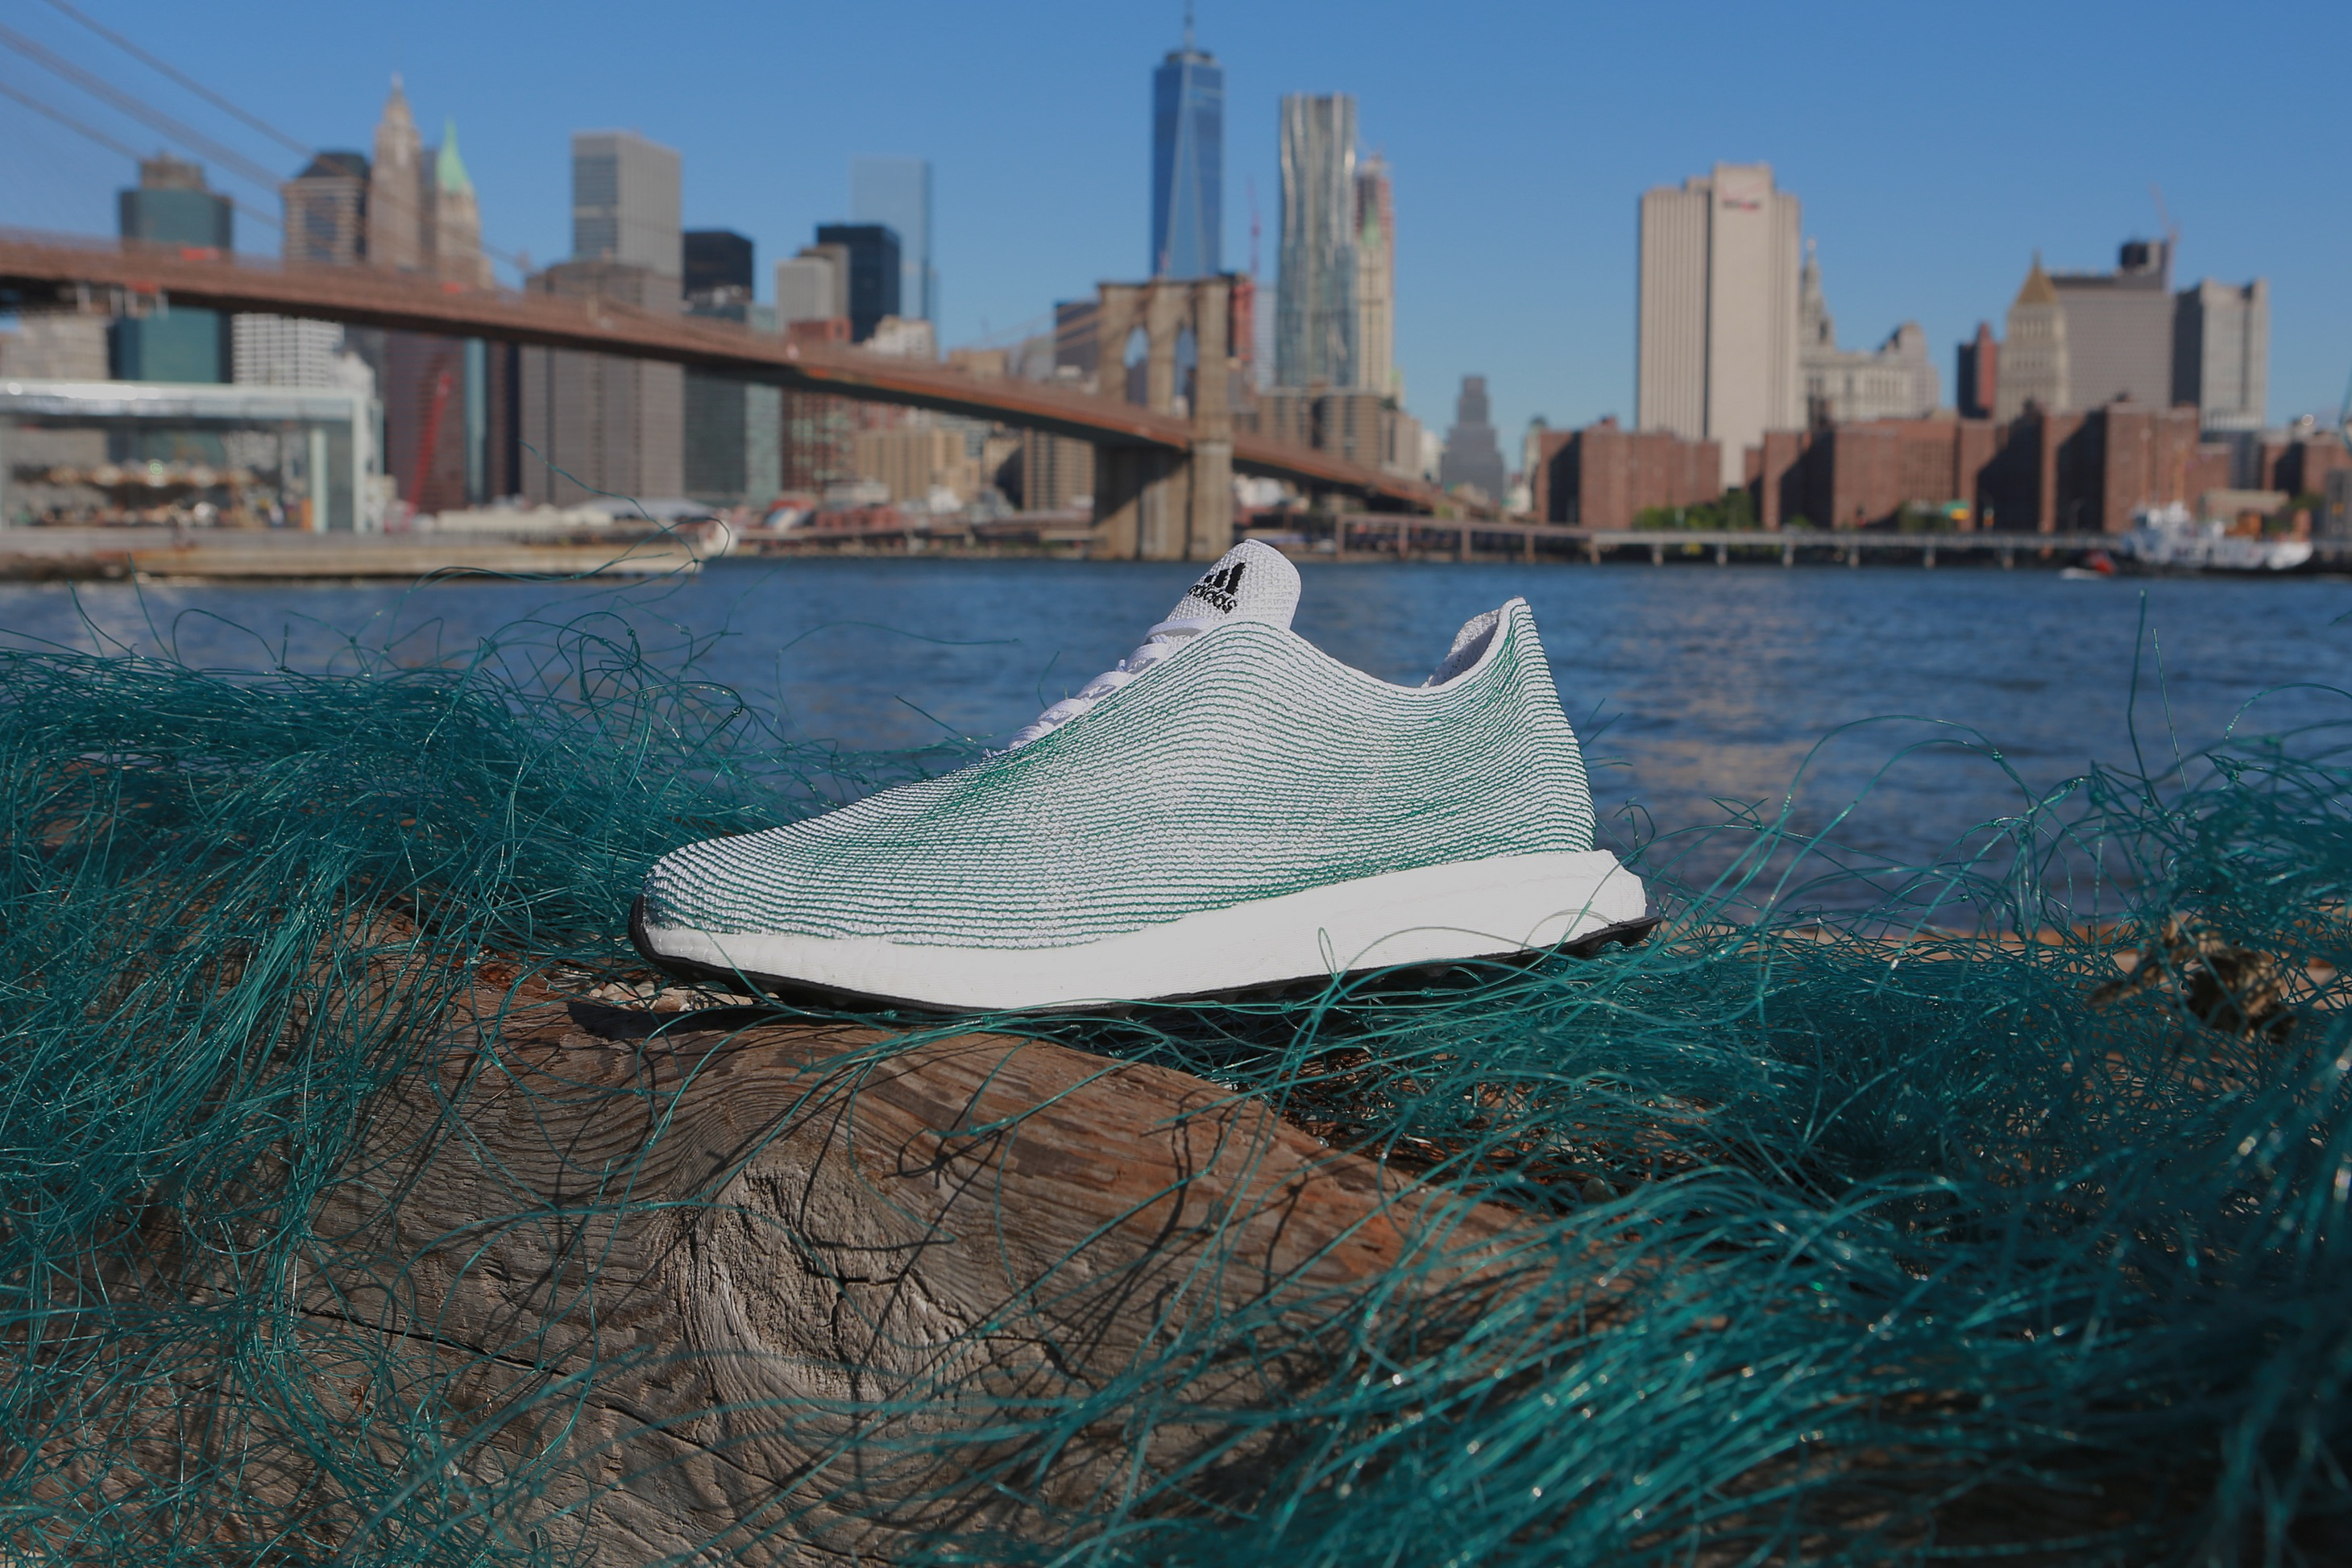 Adidas x Parley for the Oceans sneaker made from ocean waste